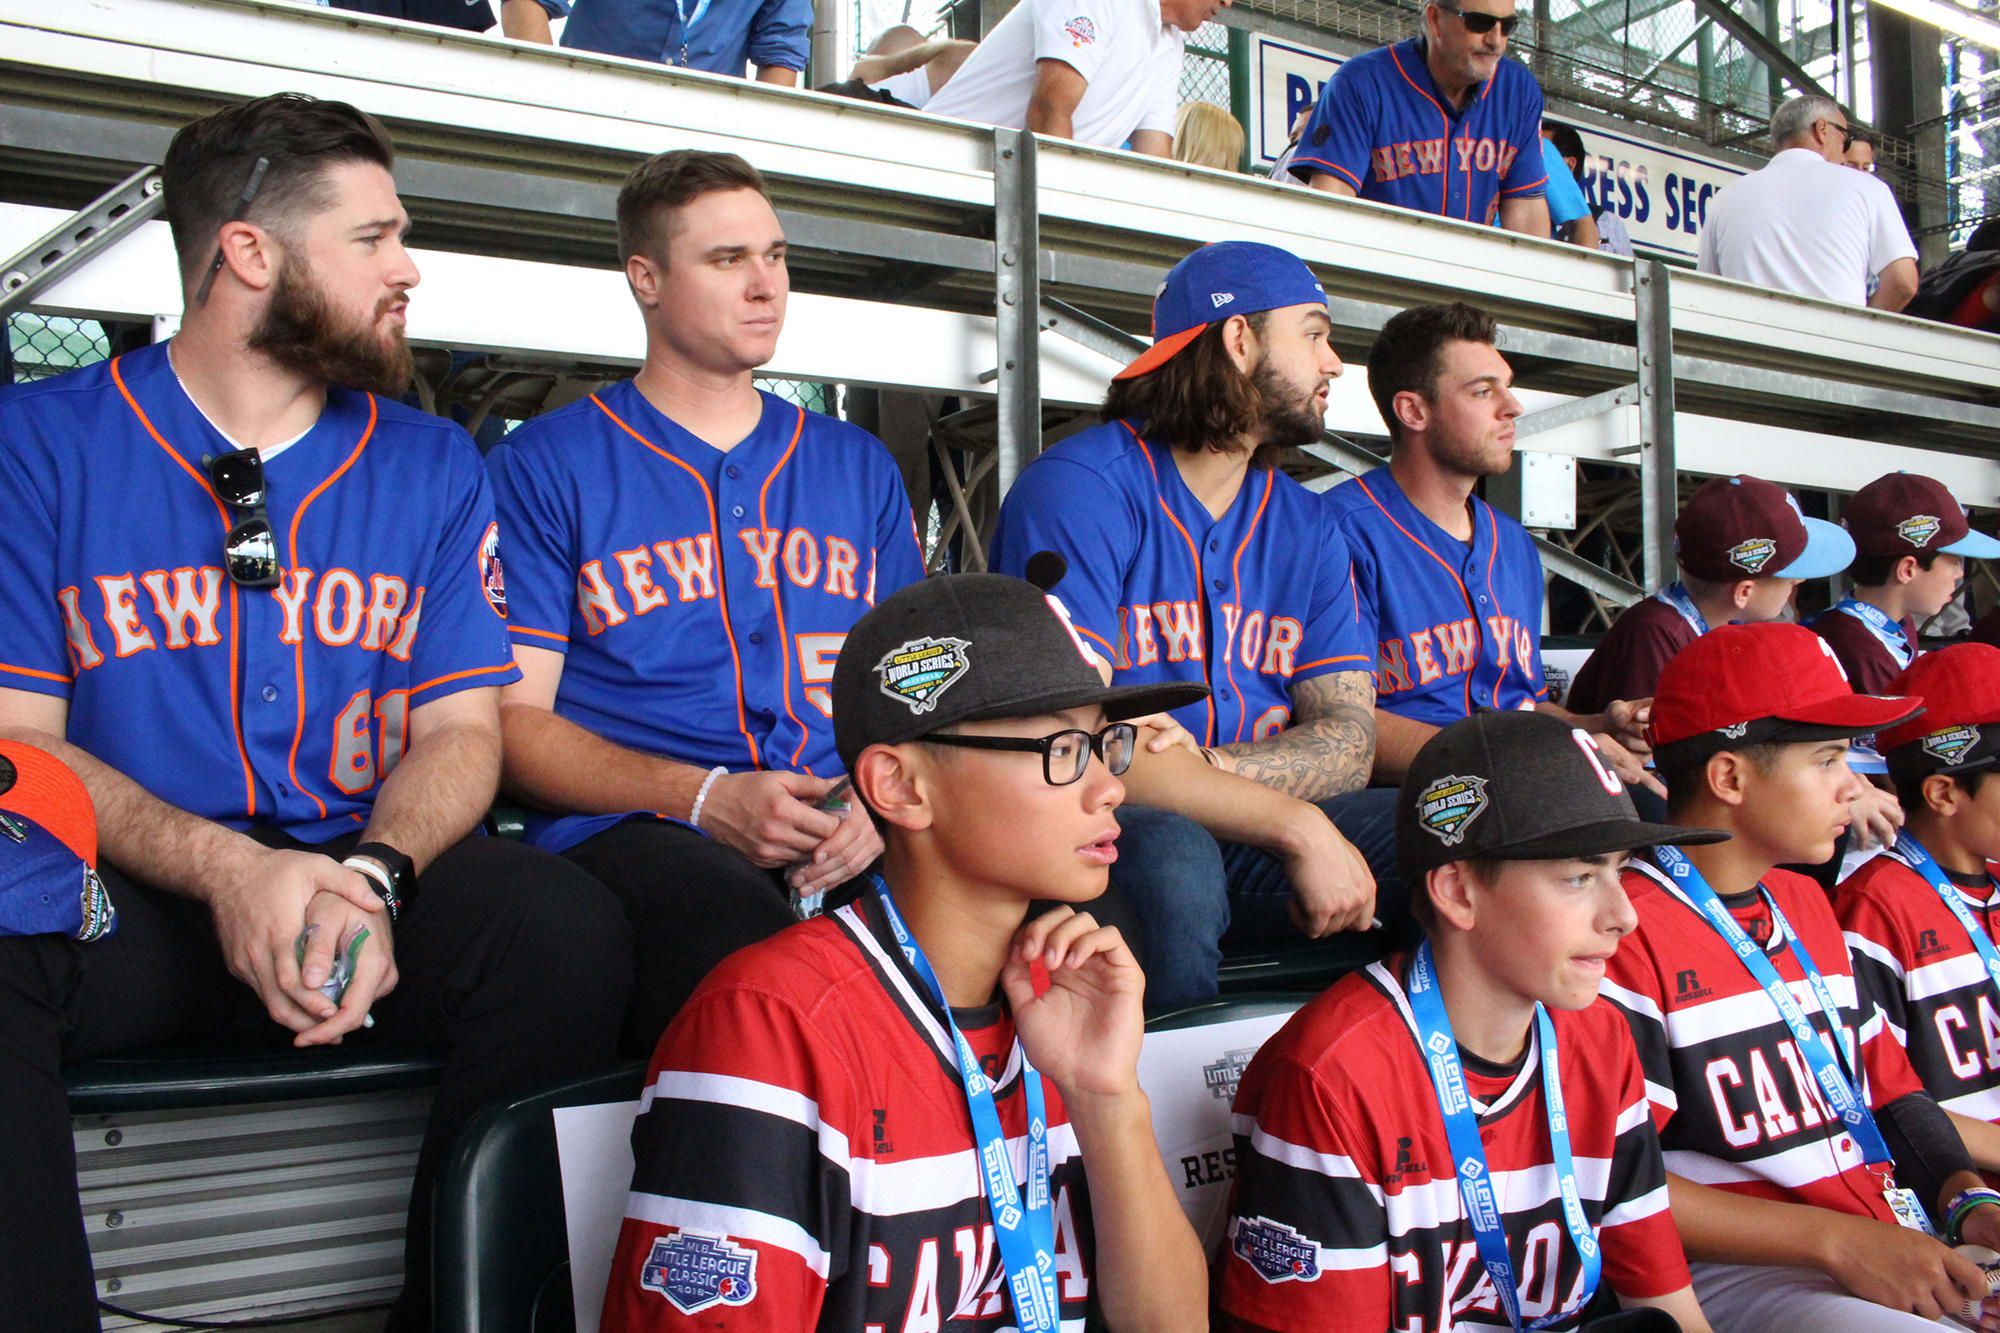 mets players and teams sitting in stands